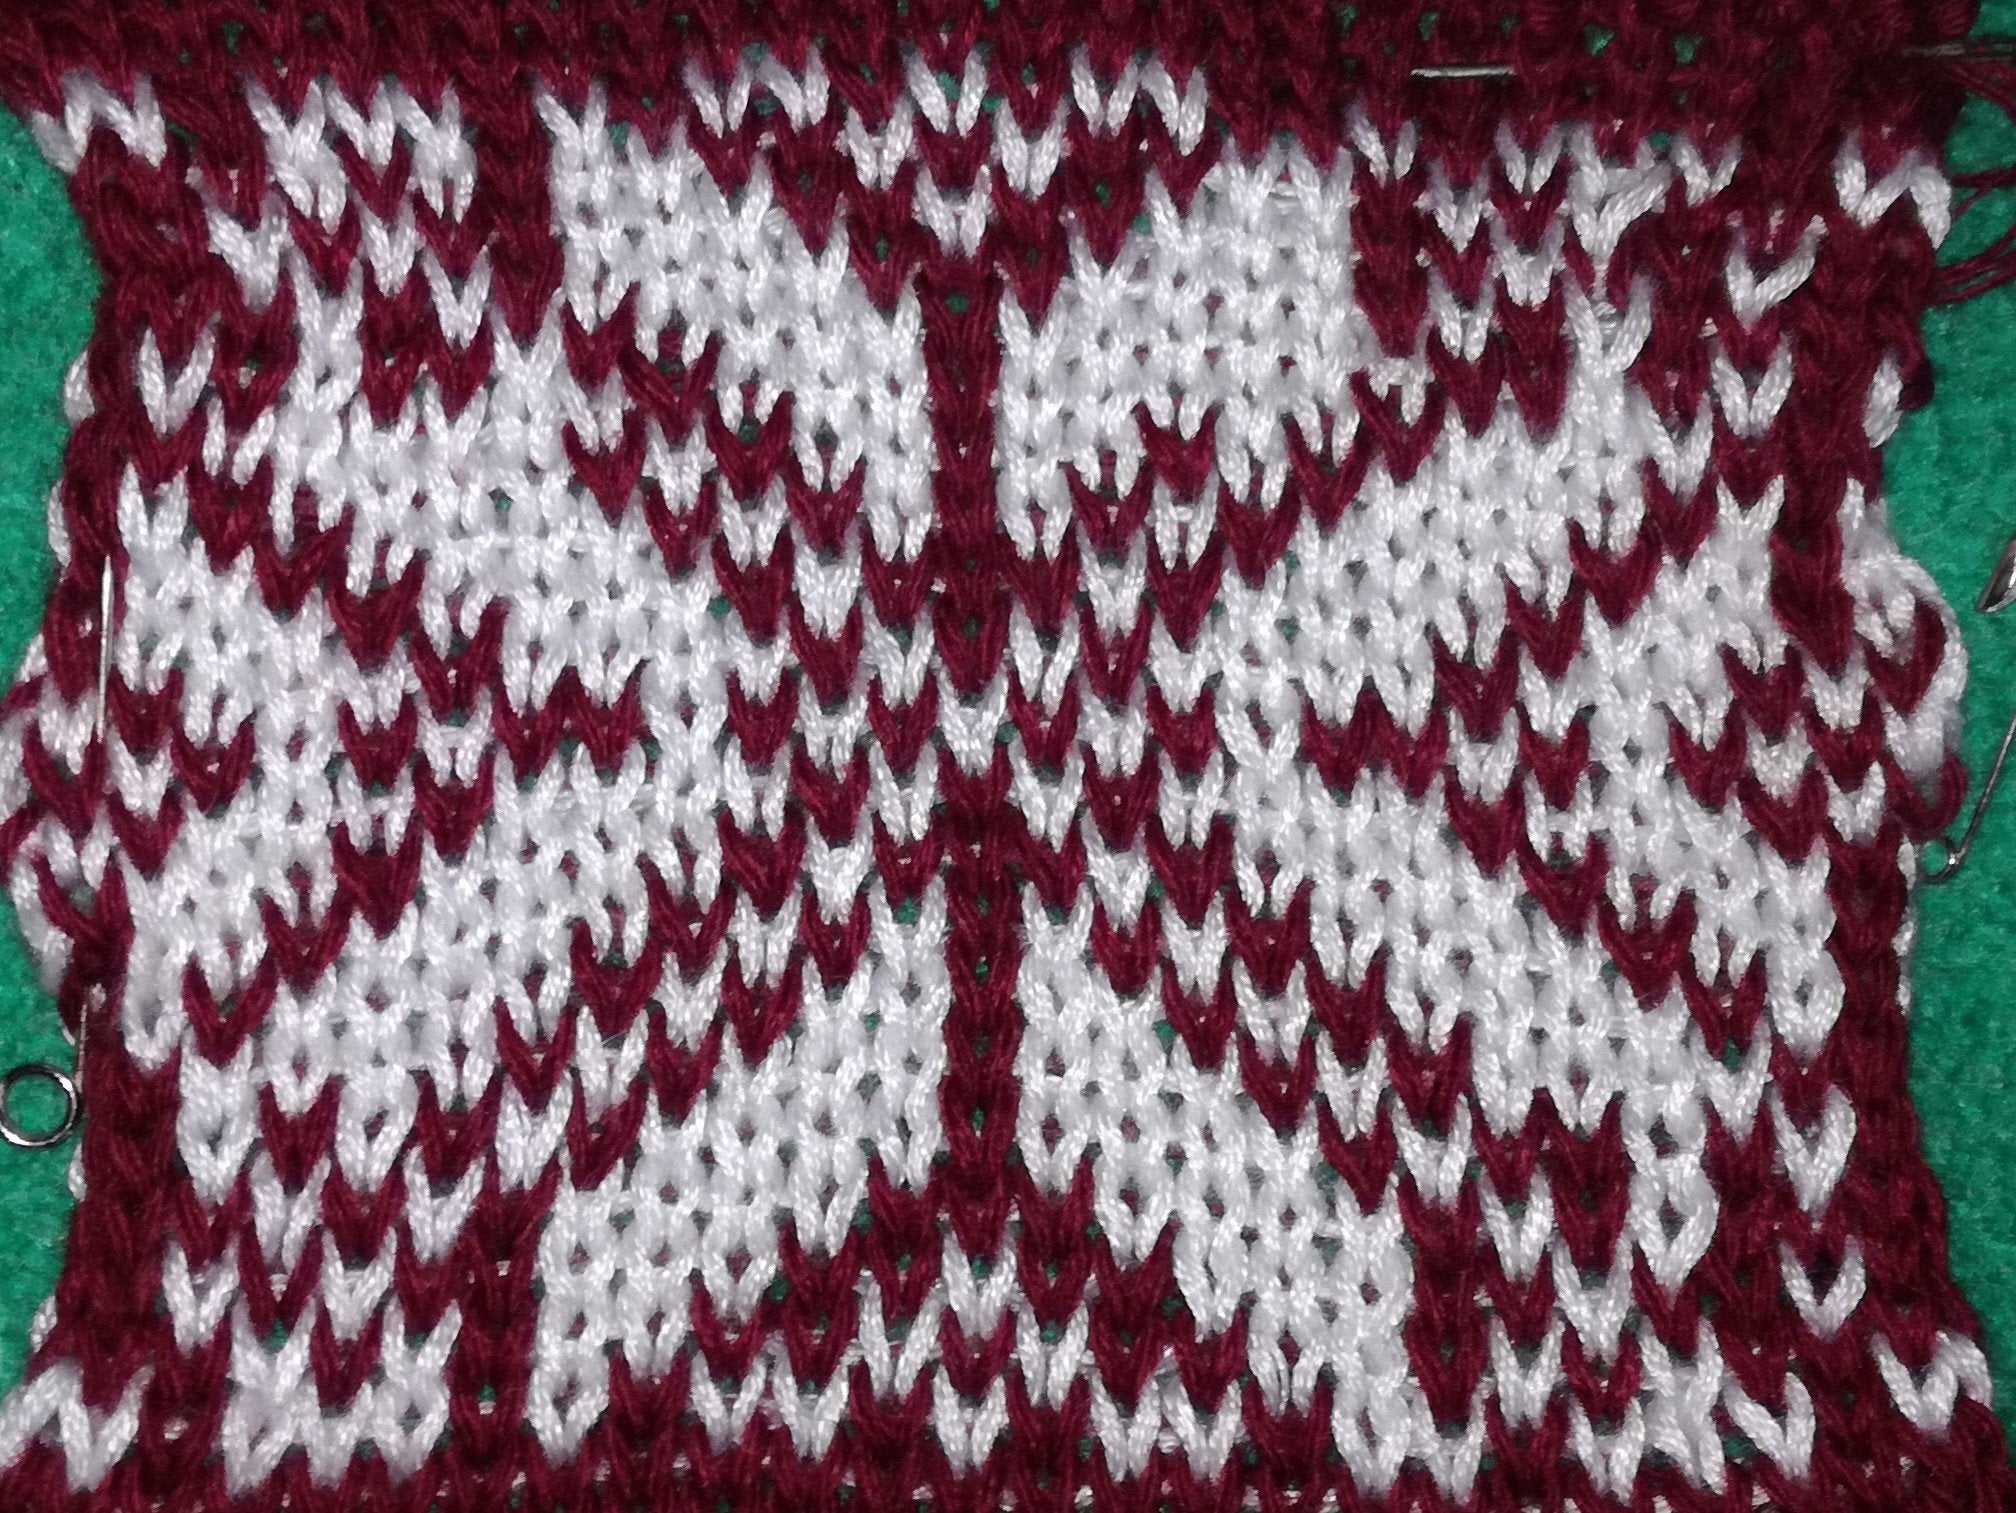 Snowflake Pattern Knitting 24stitch Punchcards Pattern For Machine Knitting Snowflake Pattern Explanations Added Colorful Fair Isle Pattern Barewolfpatterns